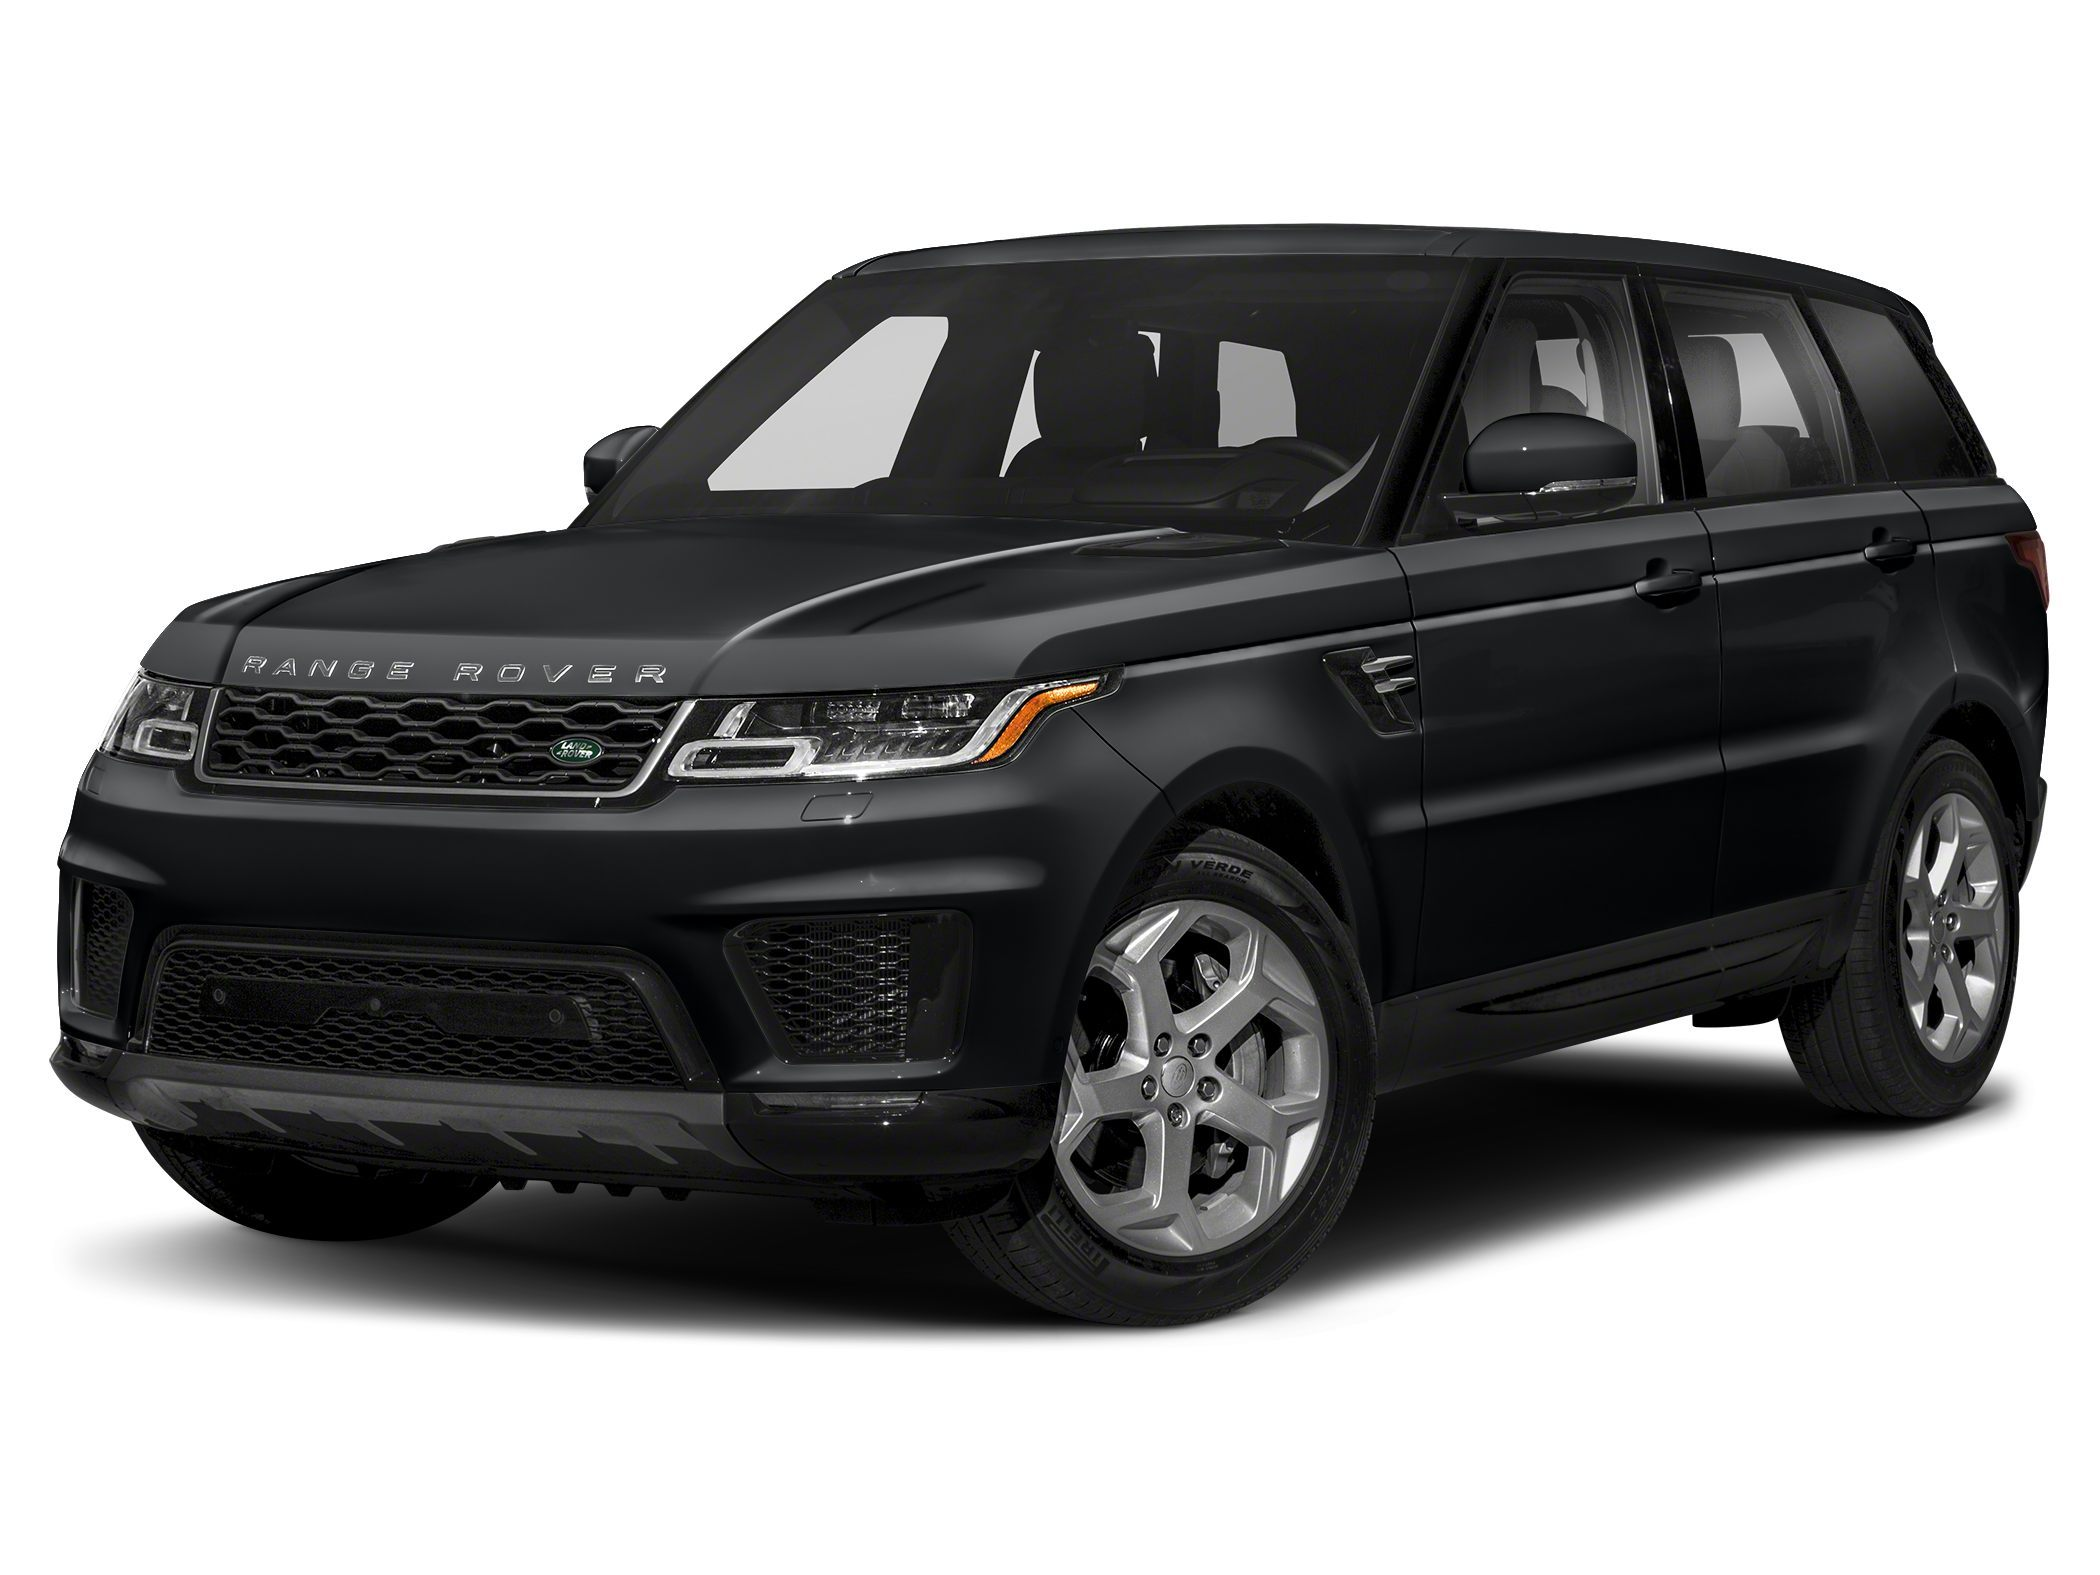 2021 Land Rover Range Rover Sport AWD HSE Silver Edition MHEV SUV